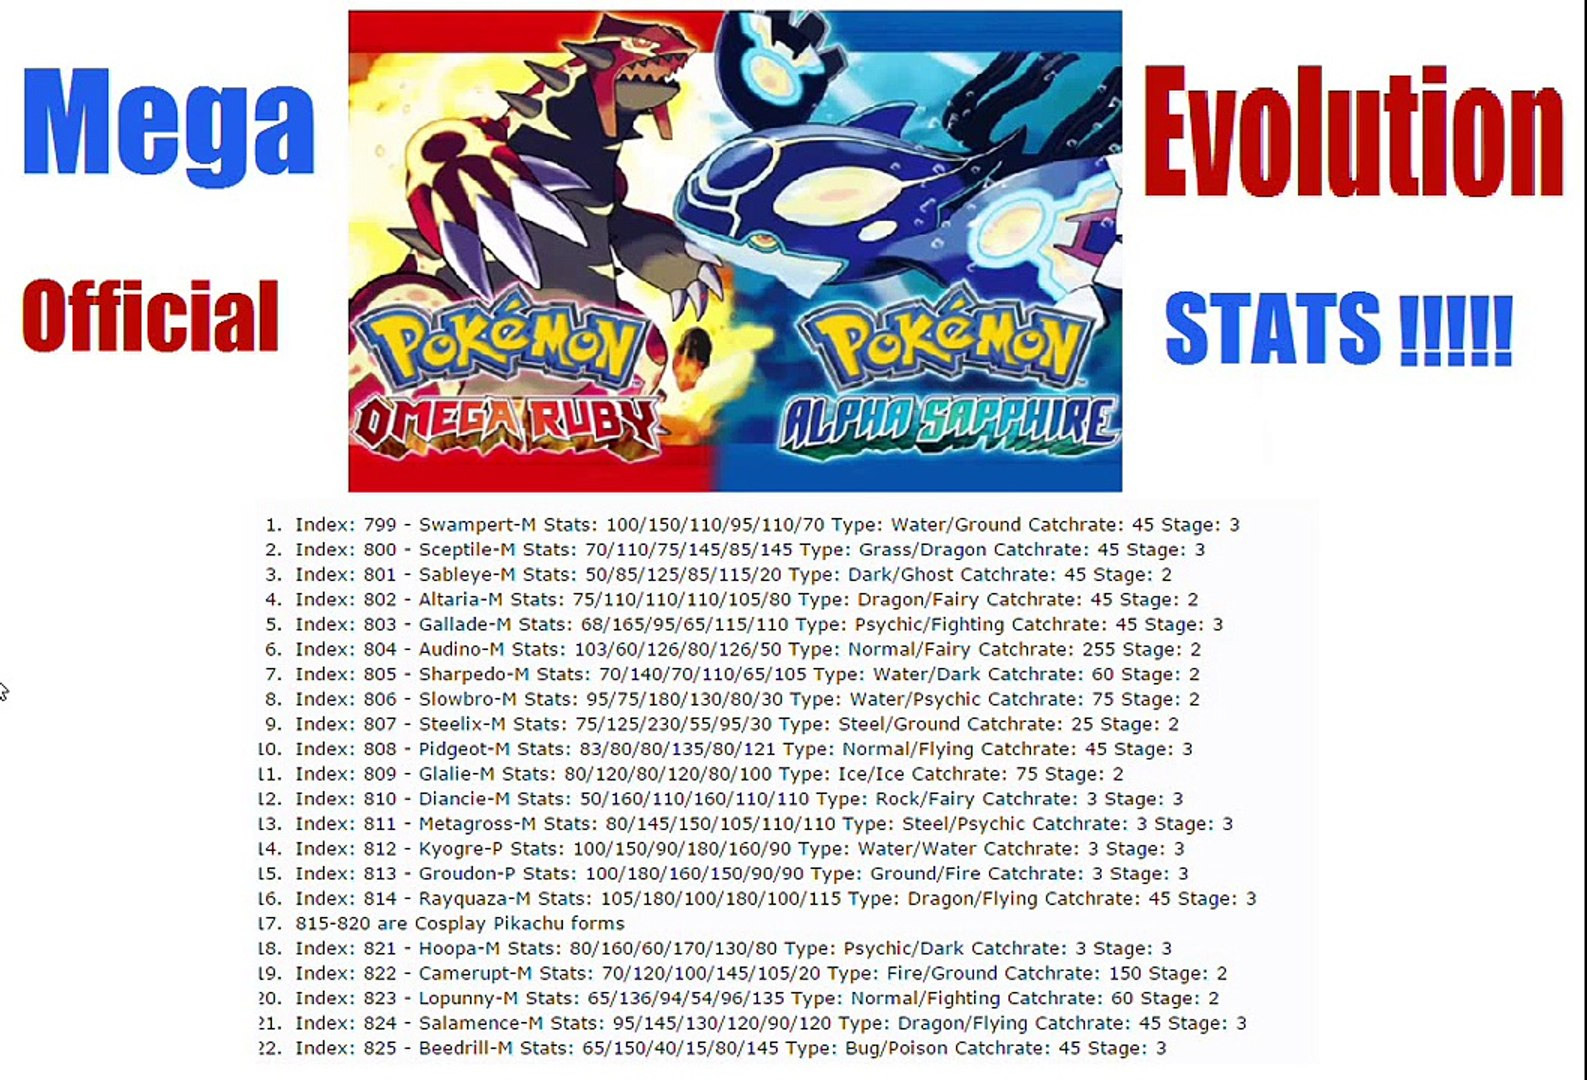 Pokemon ORAS Mega Evolution STATS!!! My Thoughts